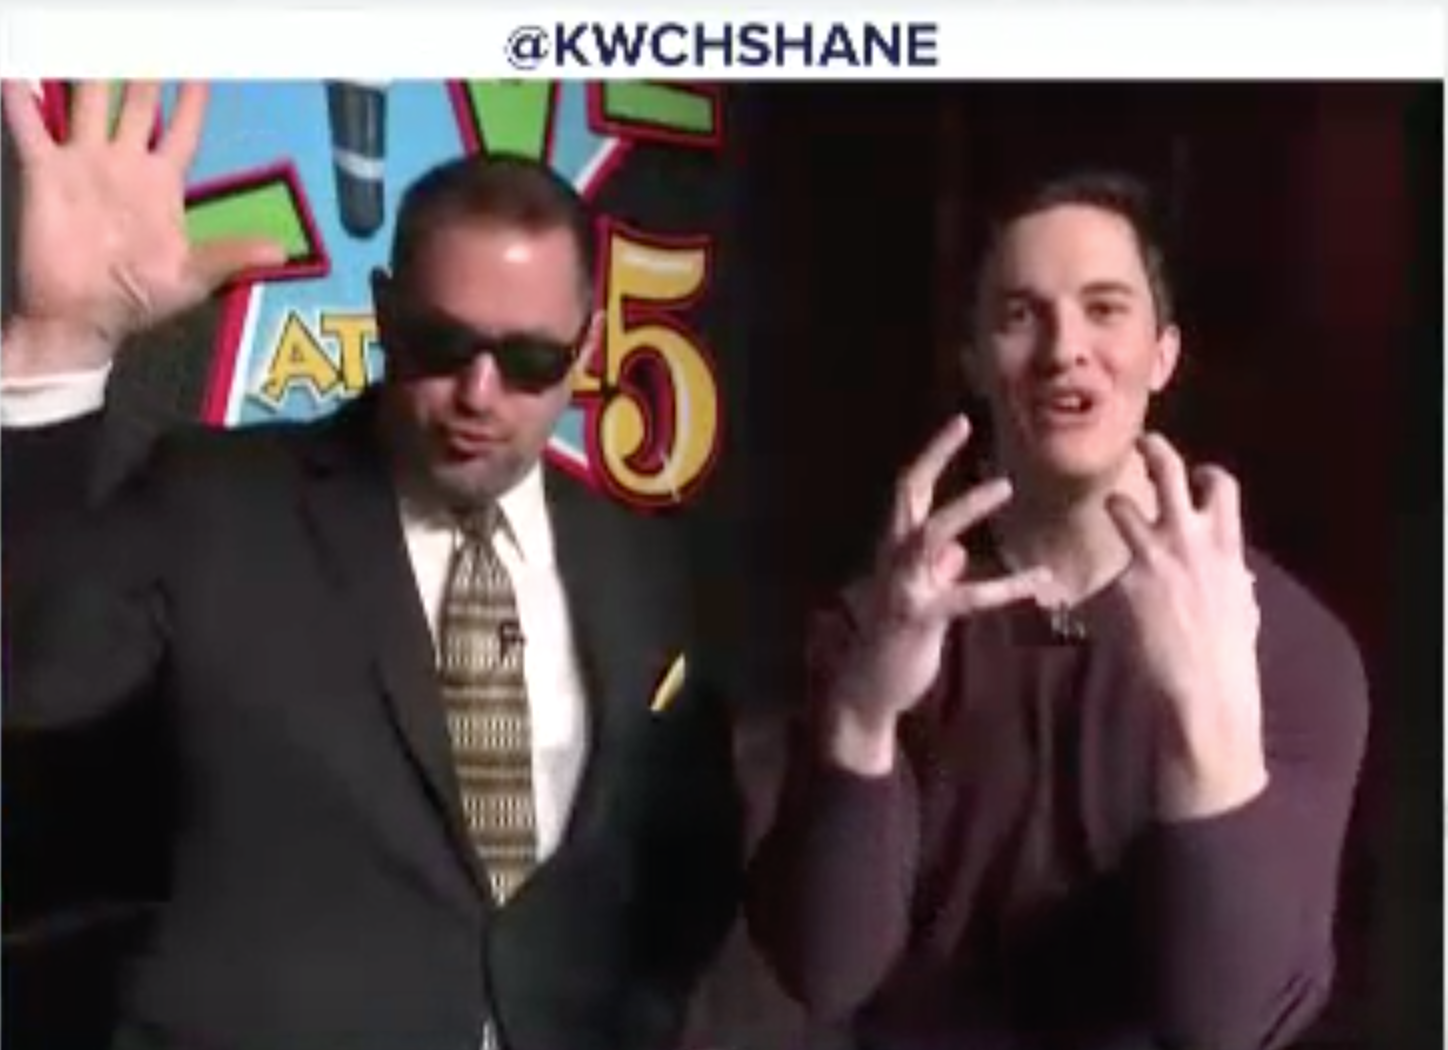 Curtis The Mentalist blows the mind of Shane Konicki on Where's Shane? KWCH 12 TV News